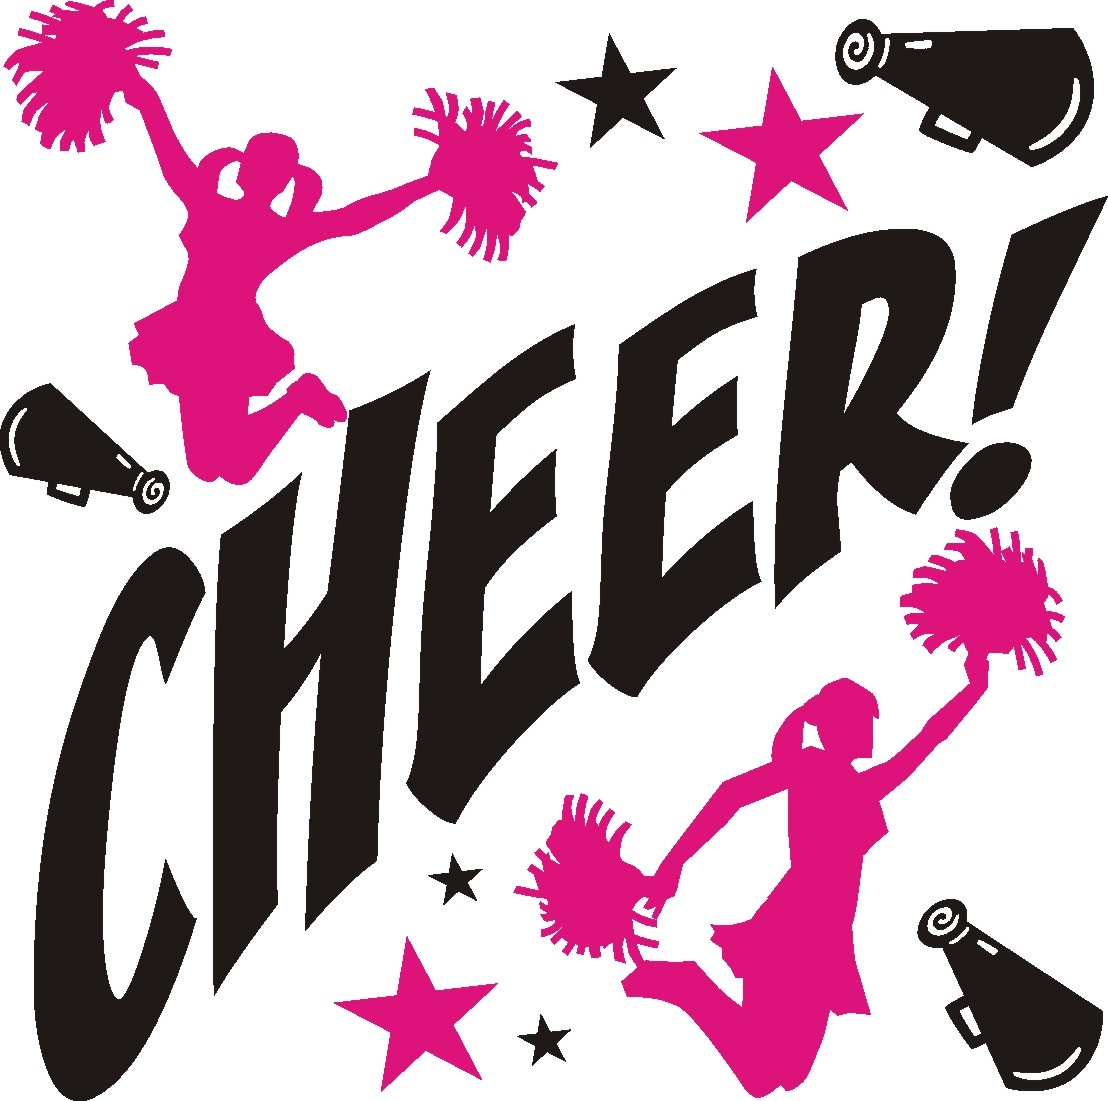 Free Cheerleading Clipart | Free Download Best Free Cheerleading - Free Printable Cheerleading Clipart